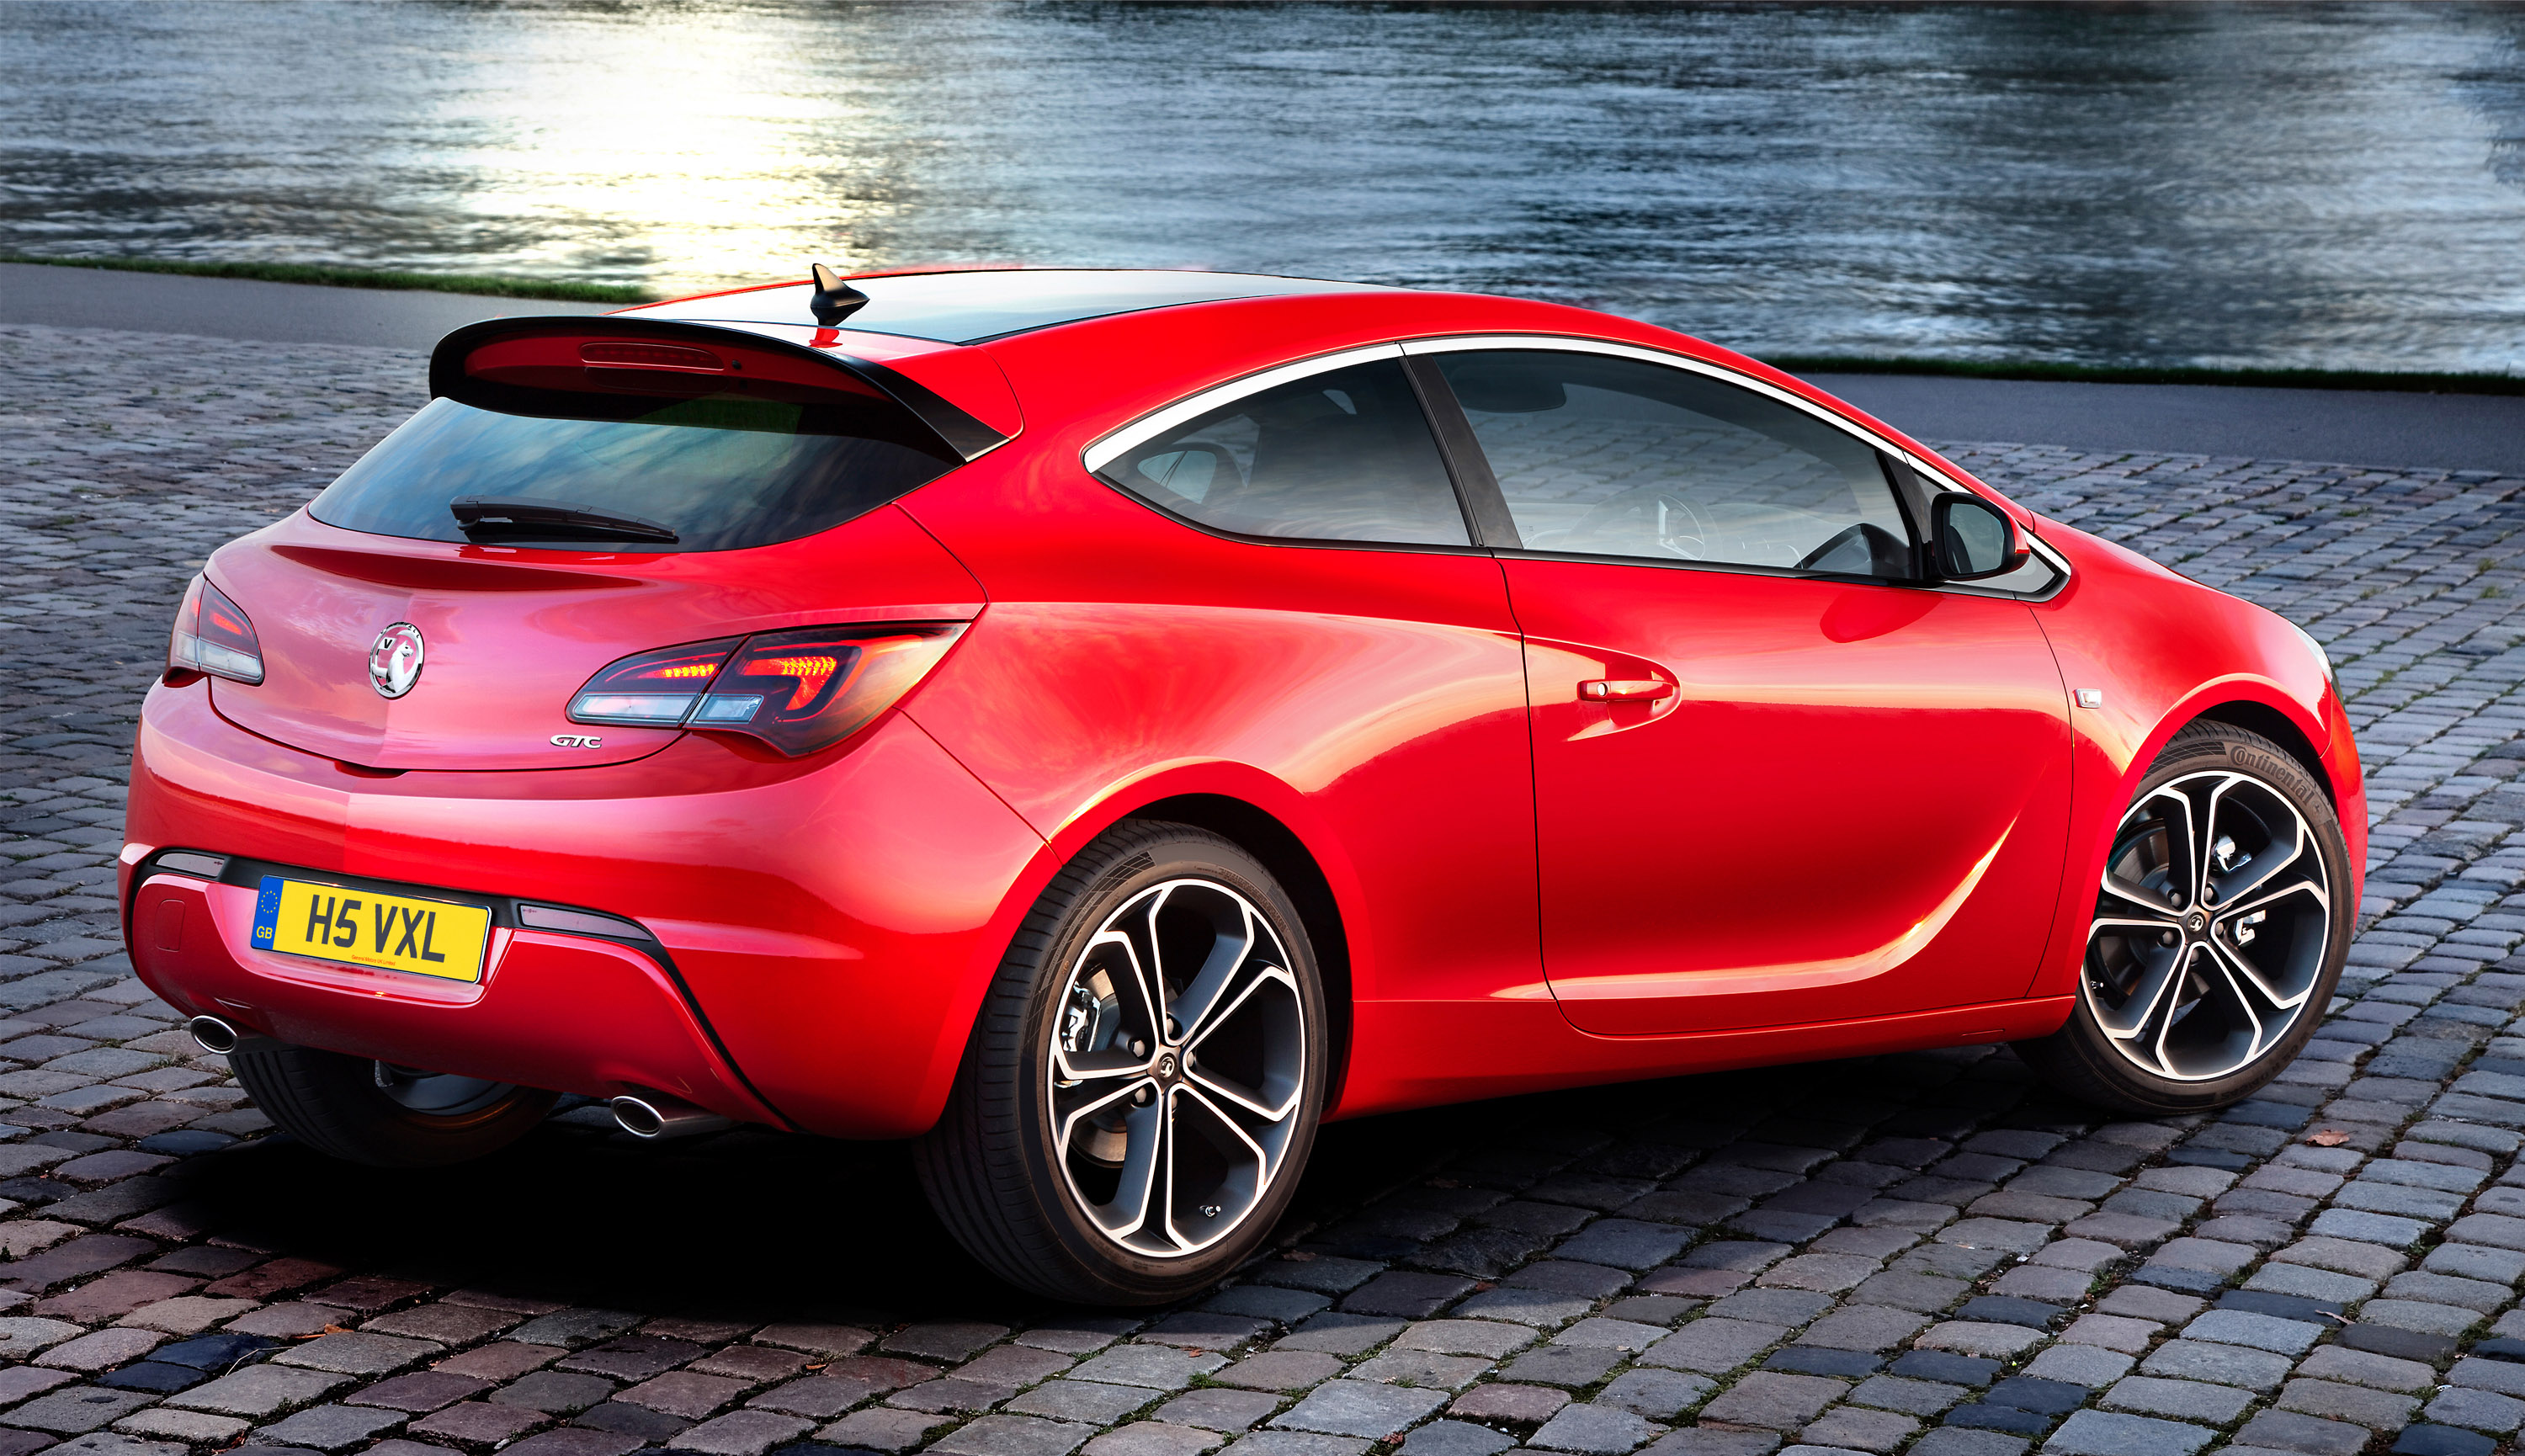 astra gtc bi turbo diesel joins vauxhall family. Black Bedroom Furniture Sets. Home Design Ideas